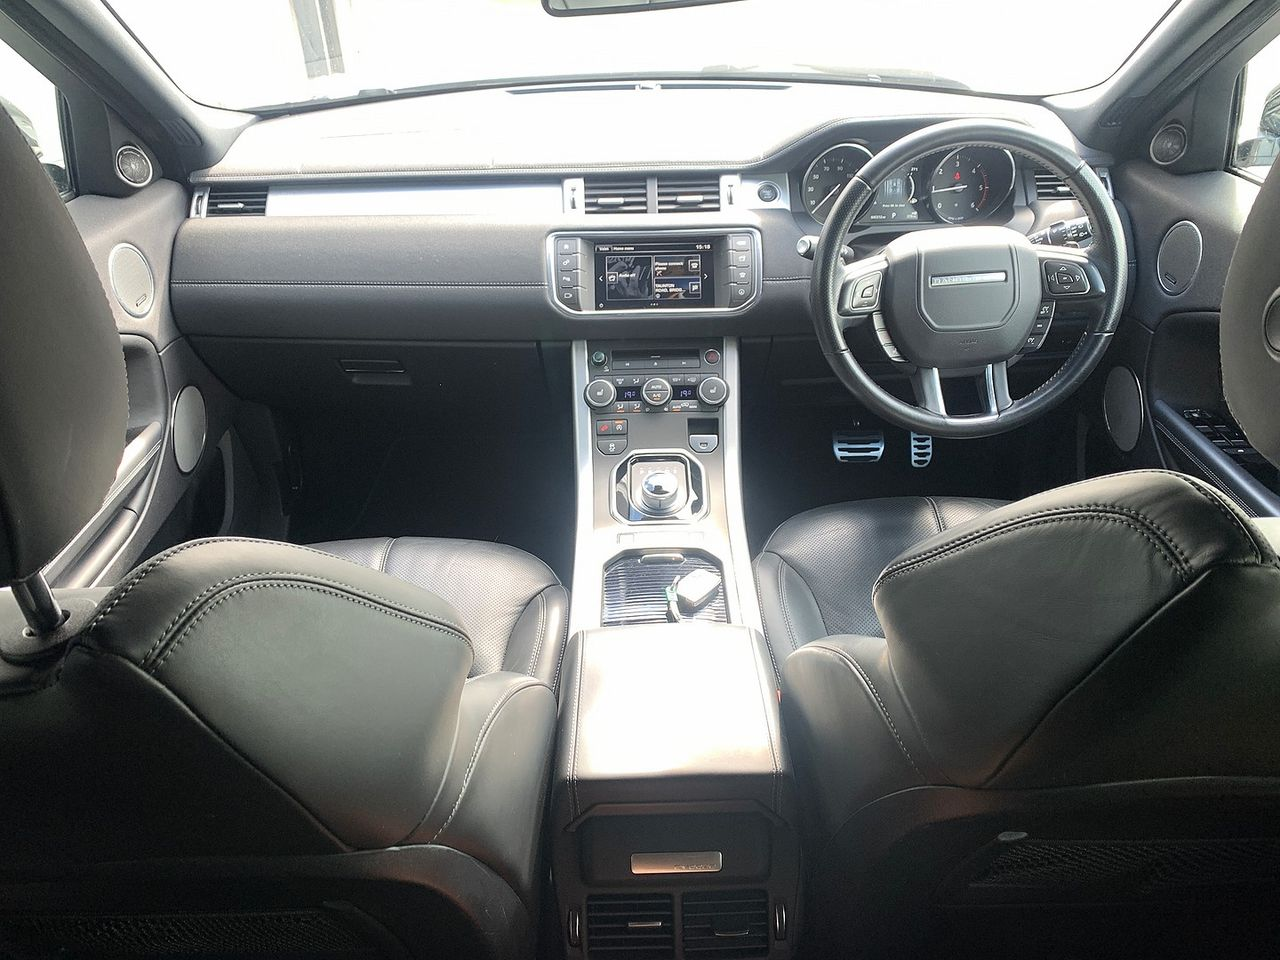 2015 LAND ROVER Range Rover Evoque Td4 180hp HSE Dynamic 9Sp Auto 4WD - Picture 7 of 11